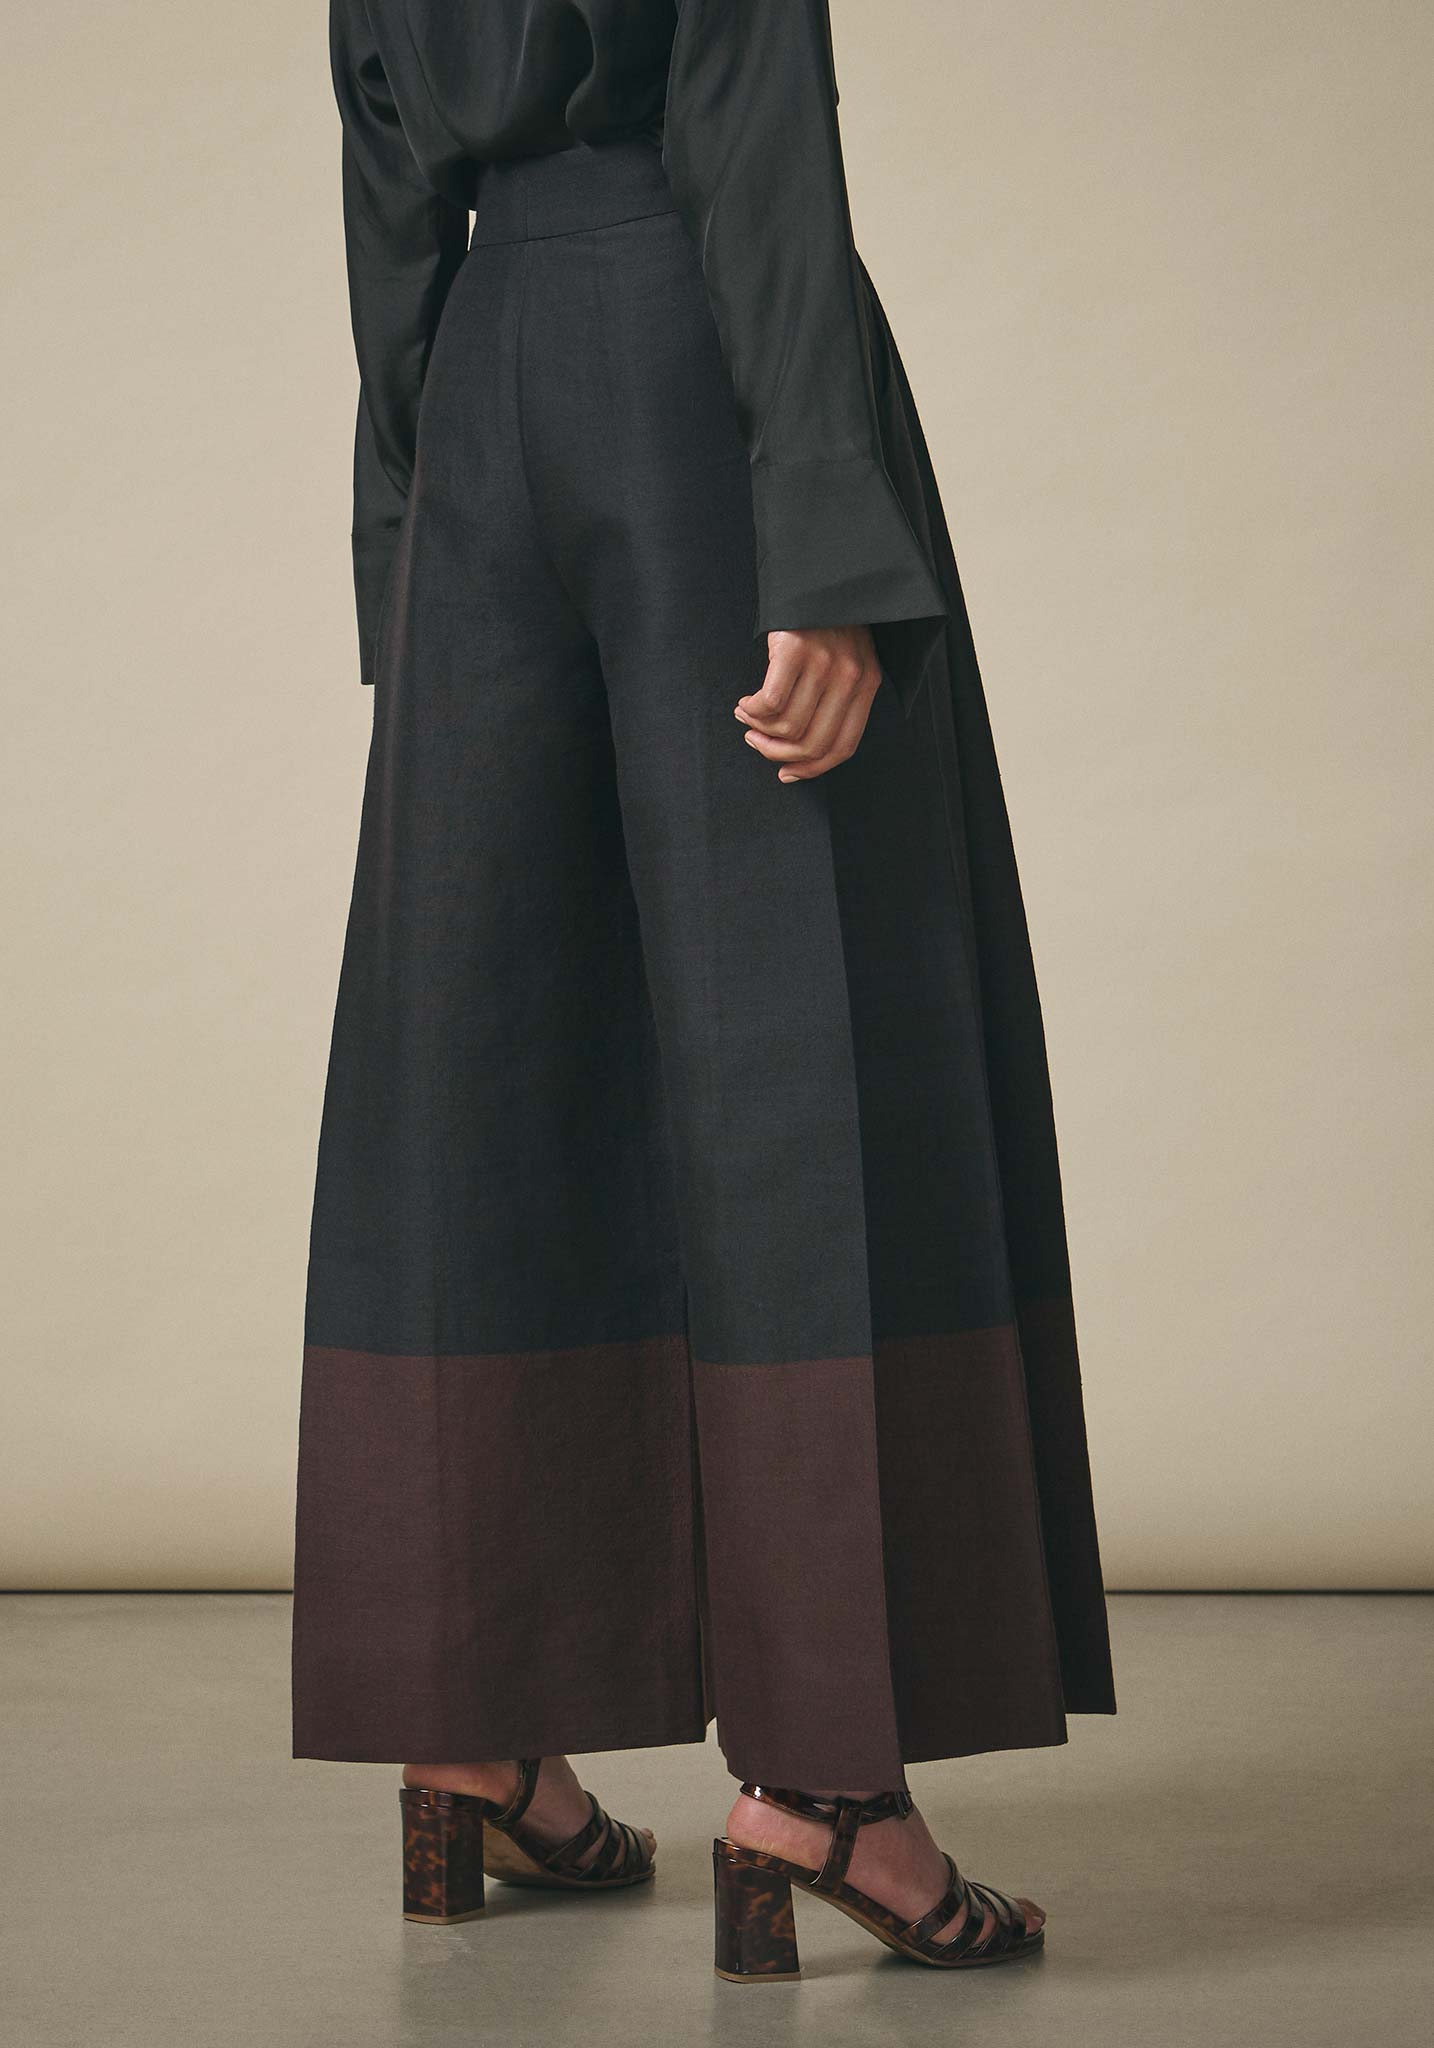 PayalKhandwala, Black Pleated Wide Leg Trousers